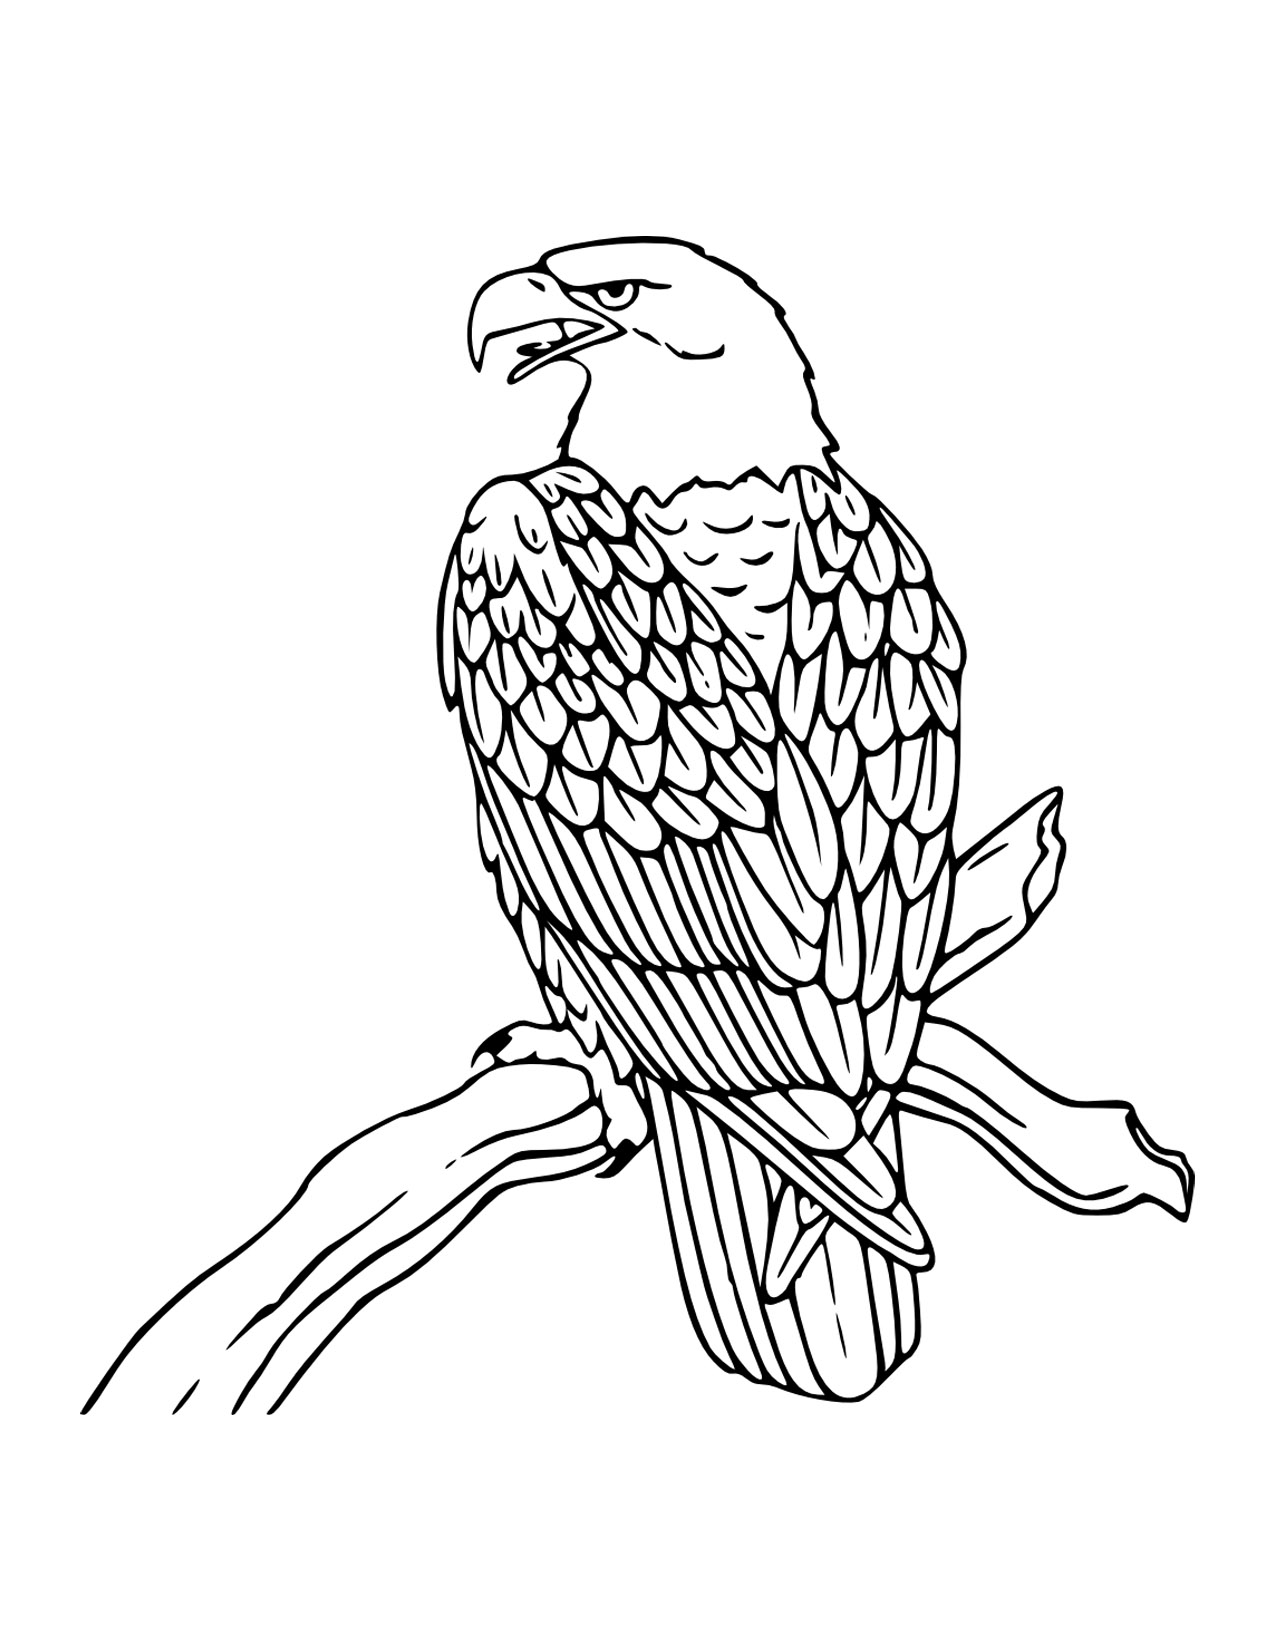 1275x1650 Free Printable Bald Eagle Coloring Pages For Kids